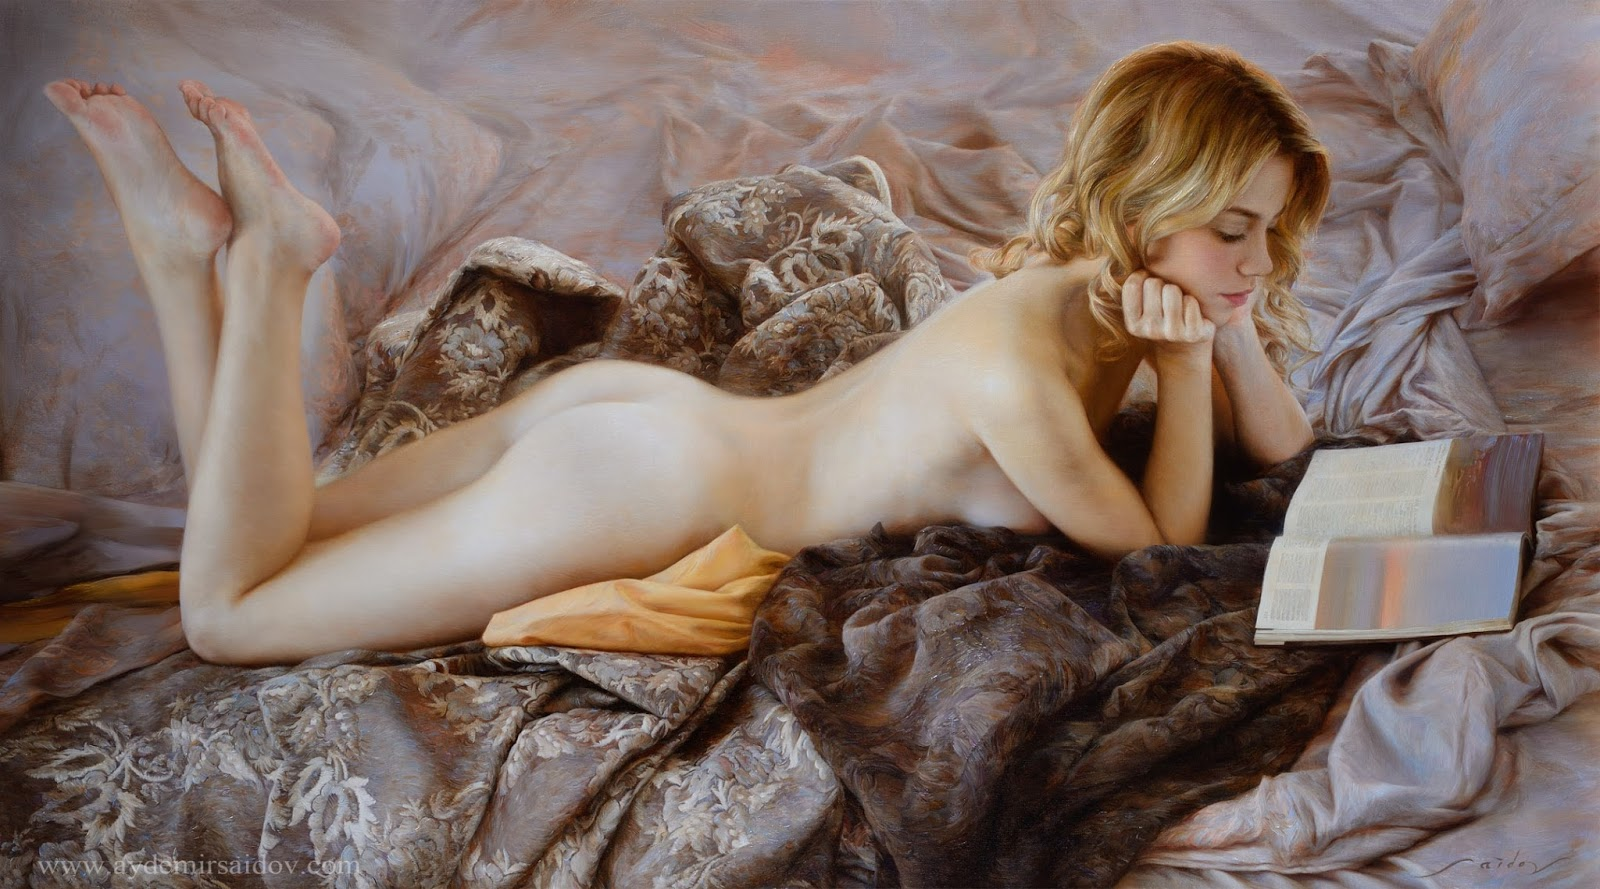 Hyperrealistic Oil Paintings by Aydemir Saidov - Where to rest (2014)